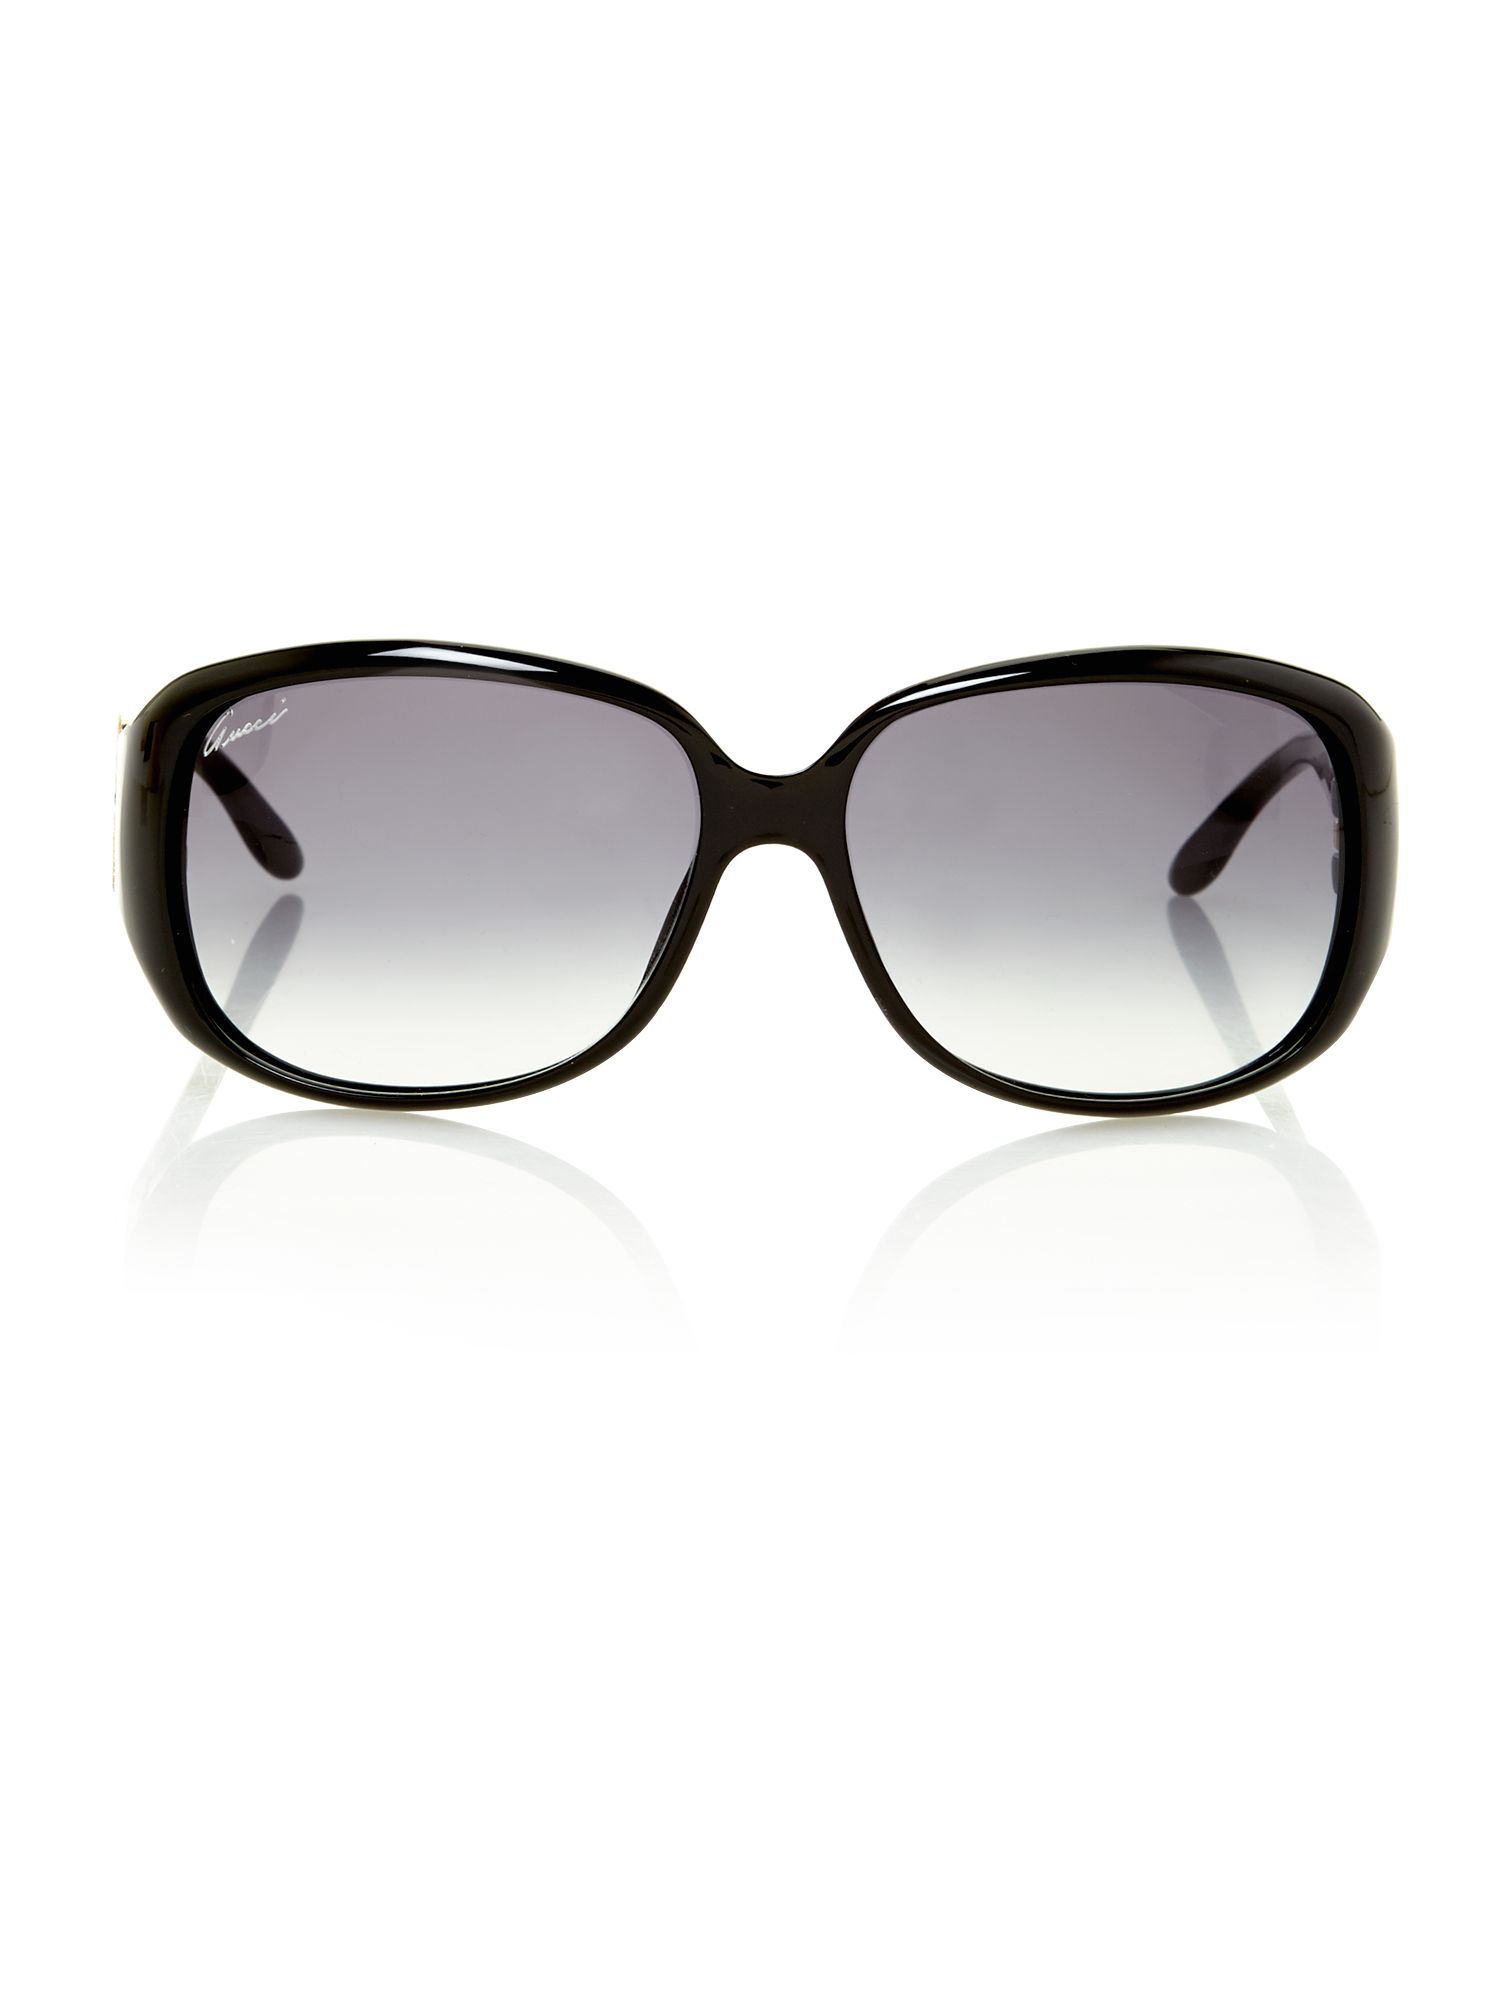 Ladies GG3578/S shiny black square sunglasses